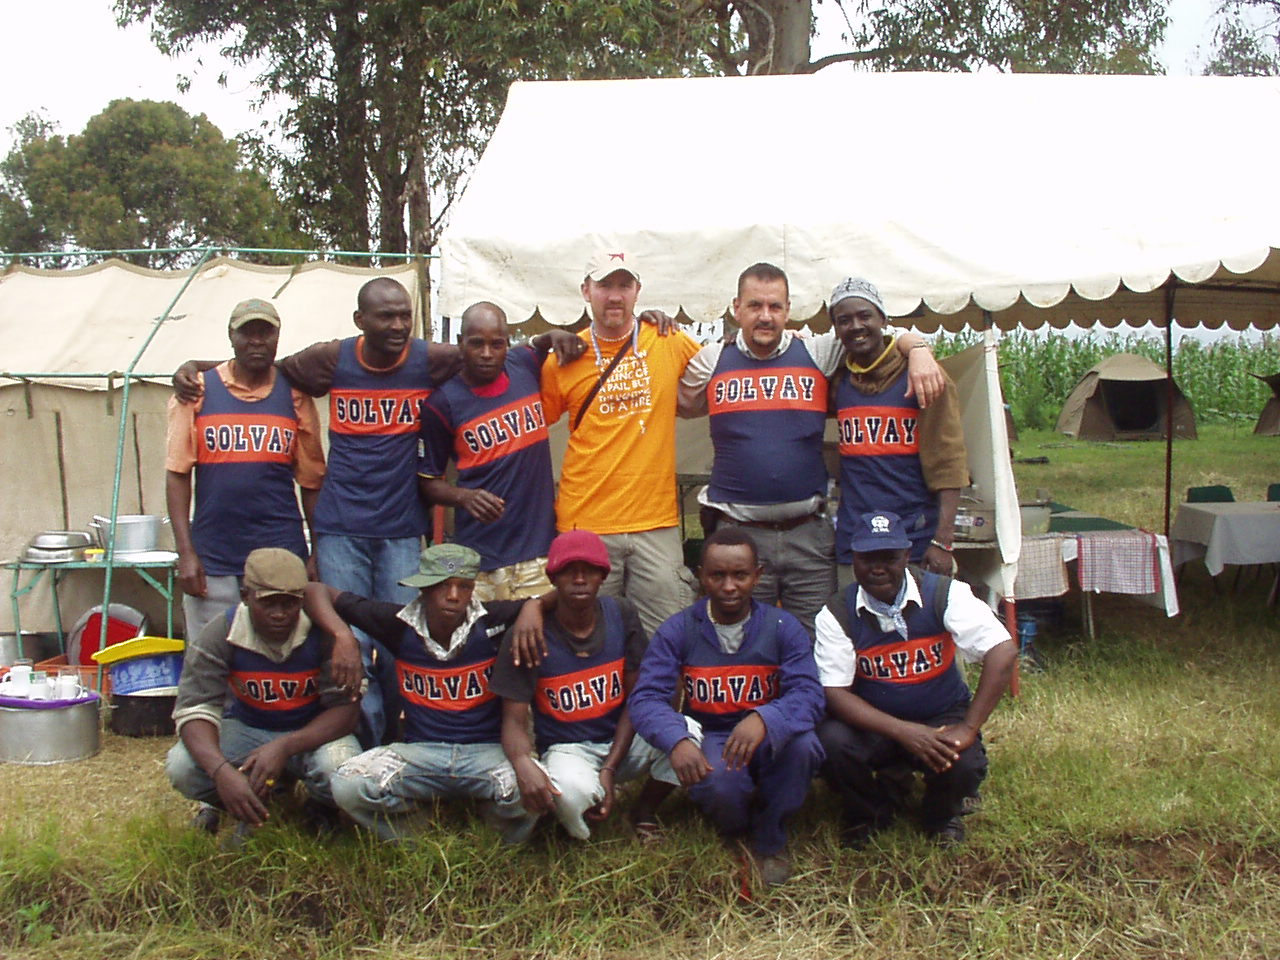 Cooking crew at the Kenya World Teacher Aid school camp site with Solvay Track jersey's